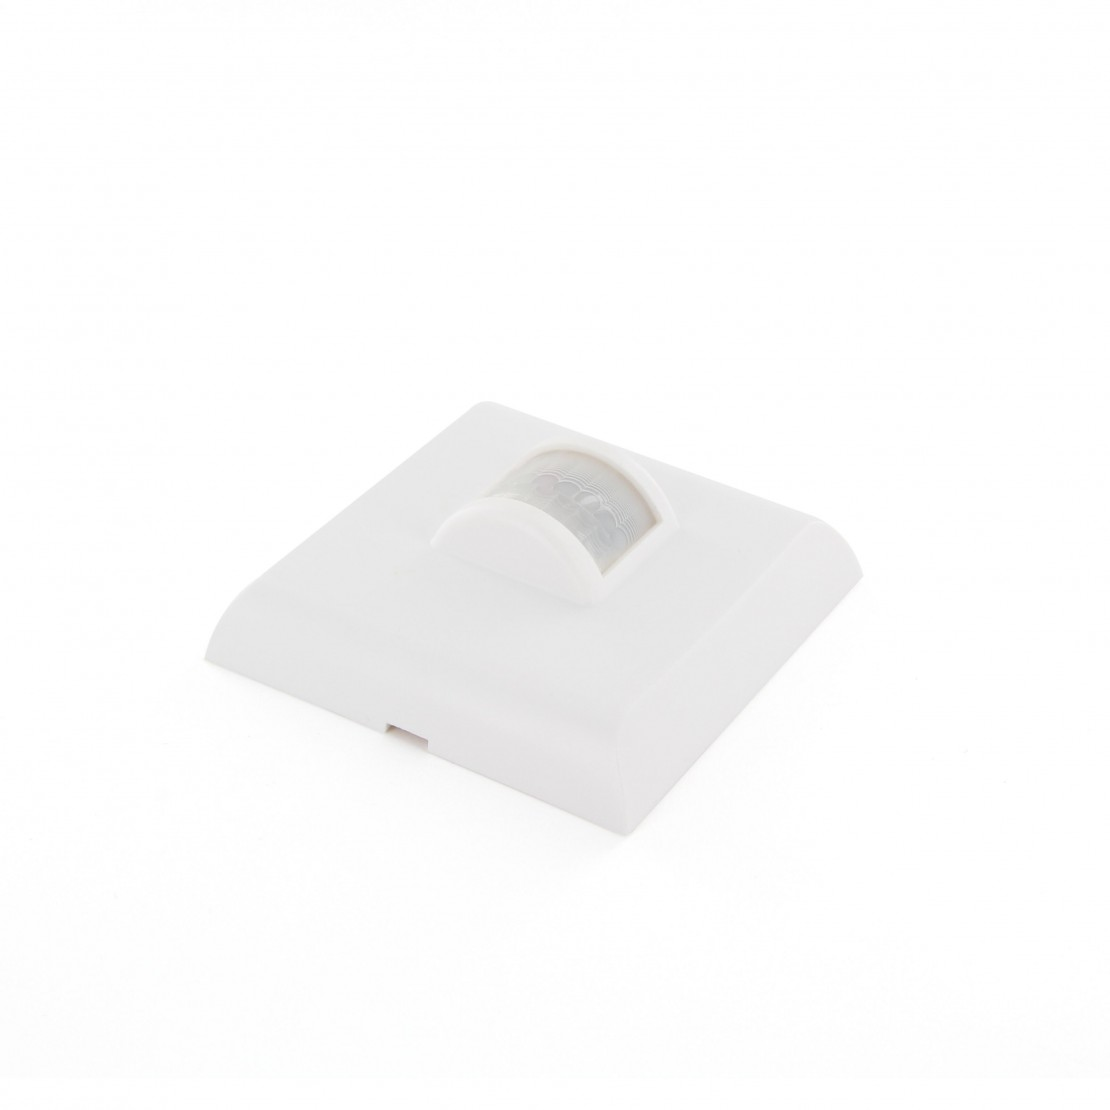 Interruptor detector de movimiento(design, blanco)